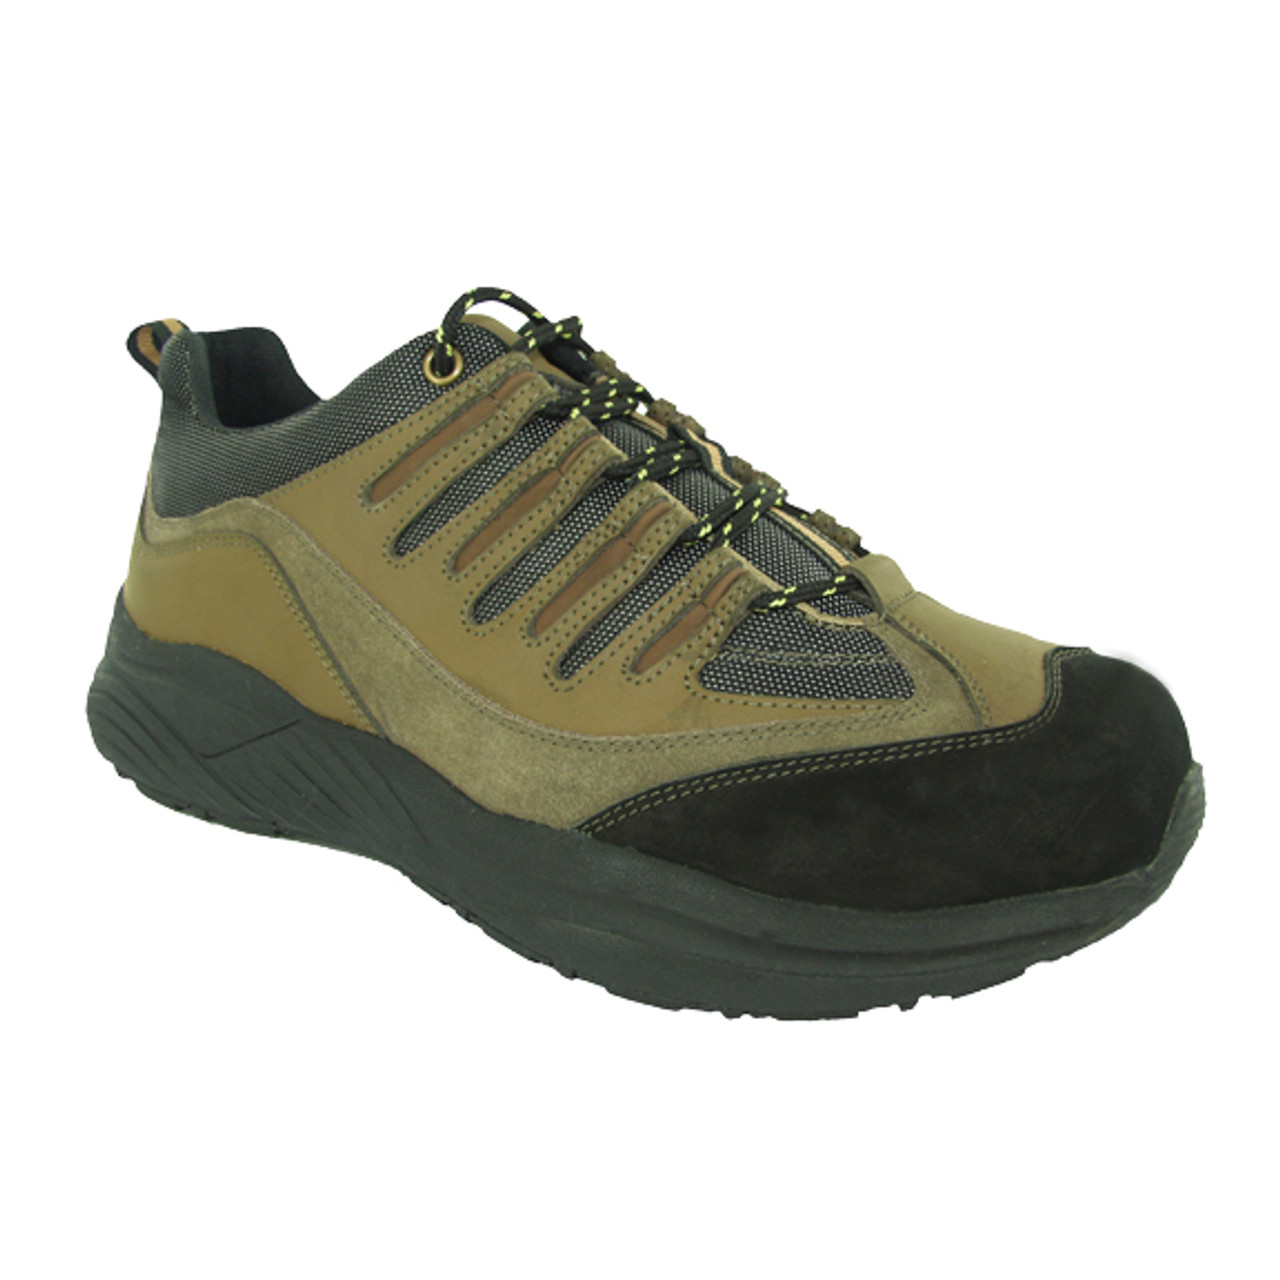 f398a66f6e Men's Orthopedic Shoes For Hiking Brown / Black by Genext